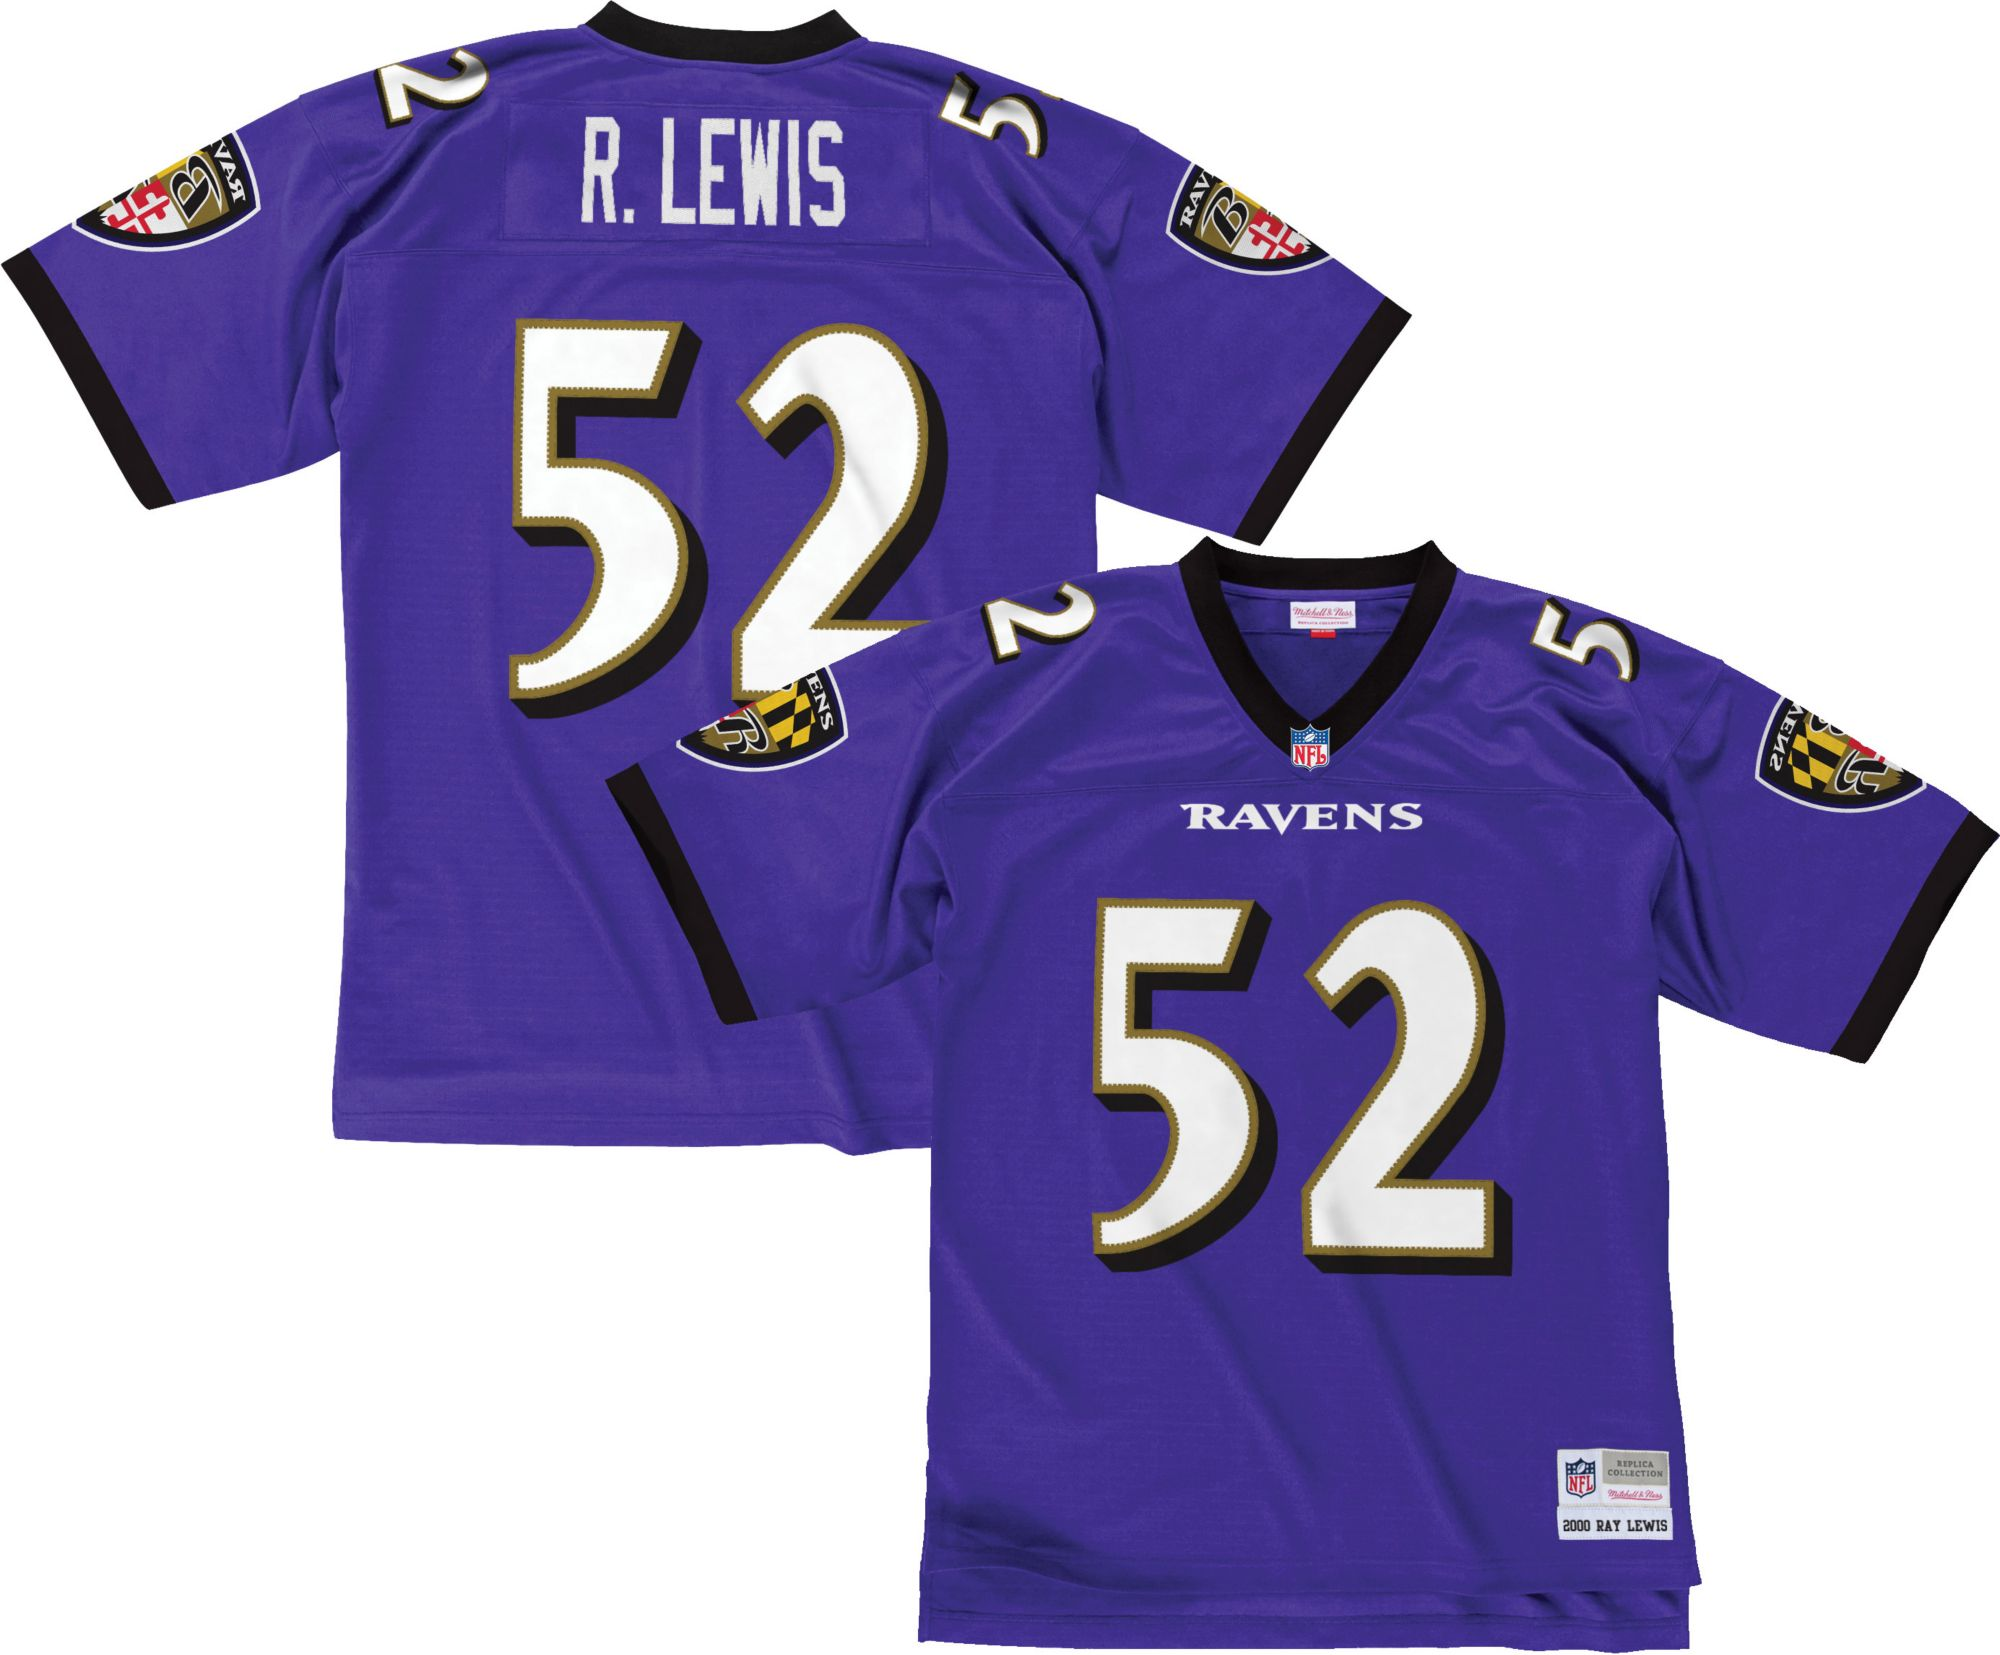 cheaper cd0fd 668a4 baltimore ravens ray lewis jersey